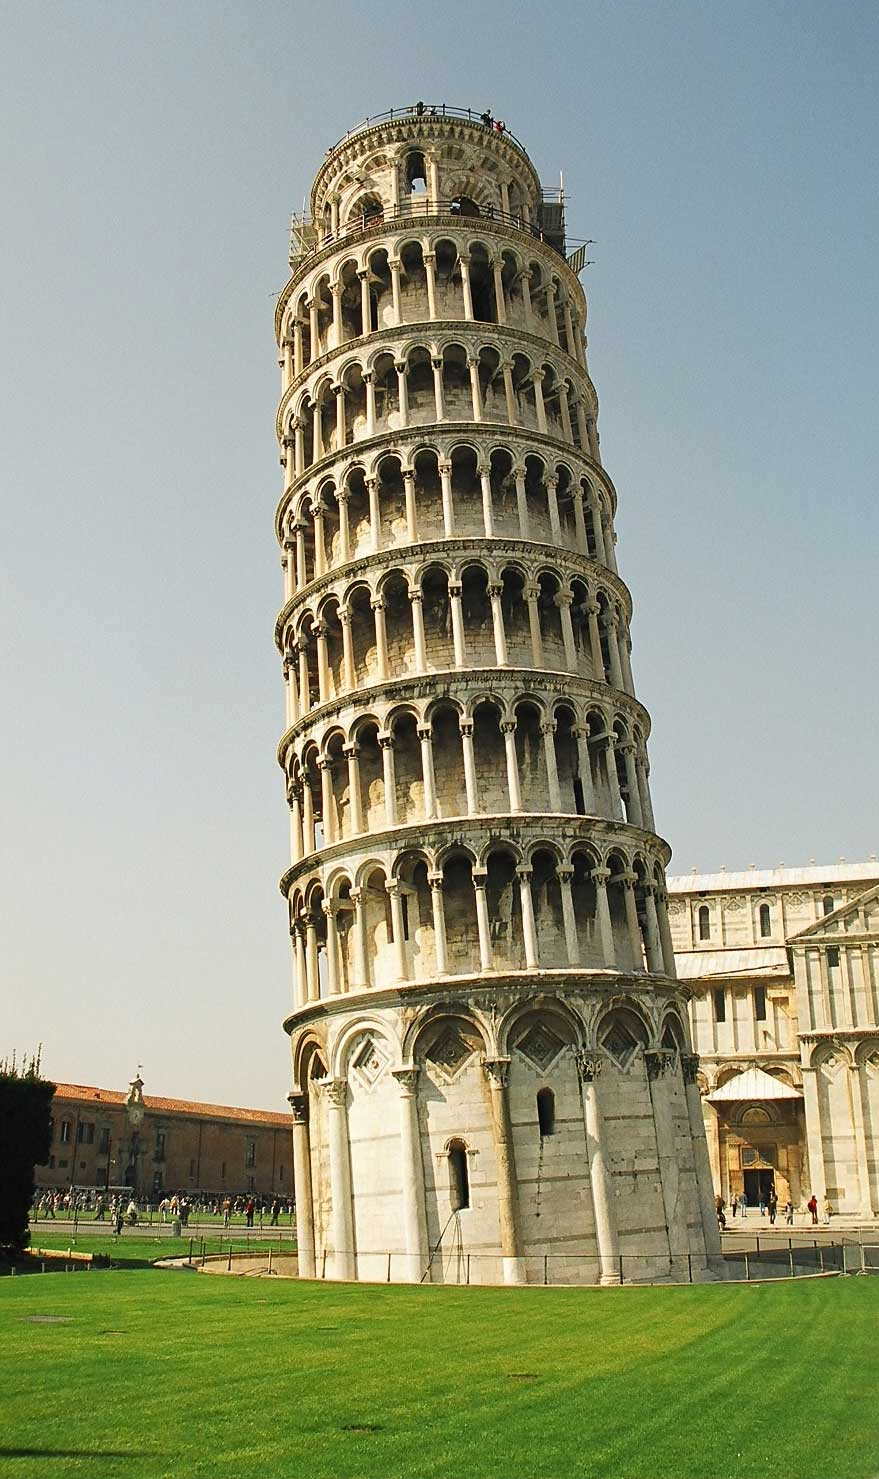 Amazing leaning tower of pisa italy hd wallpapers life insurance canada - Leaning tower of pisa ...